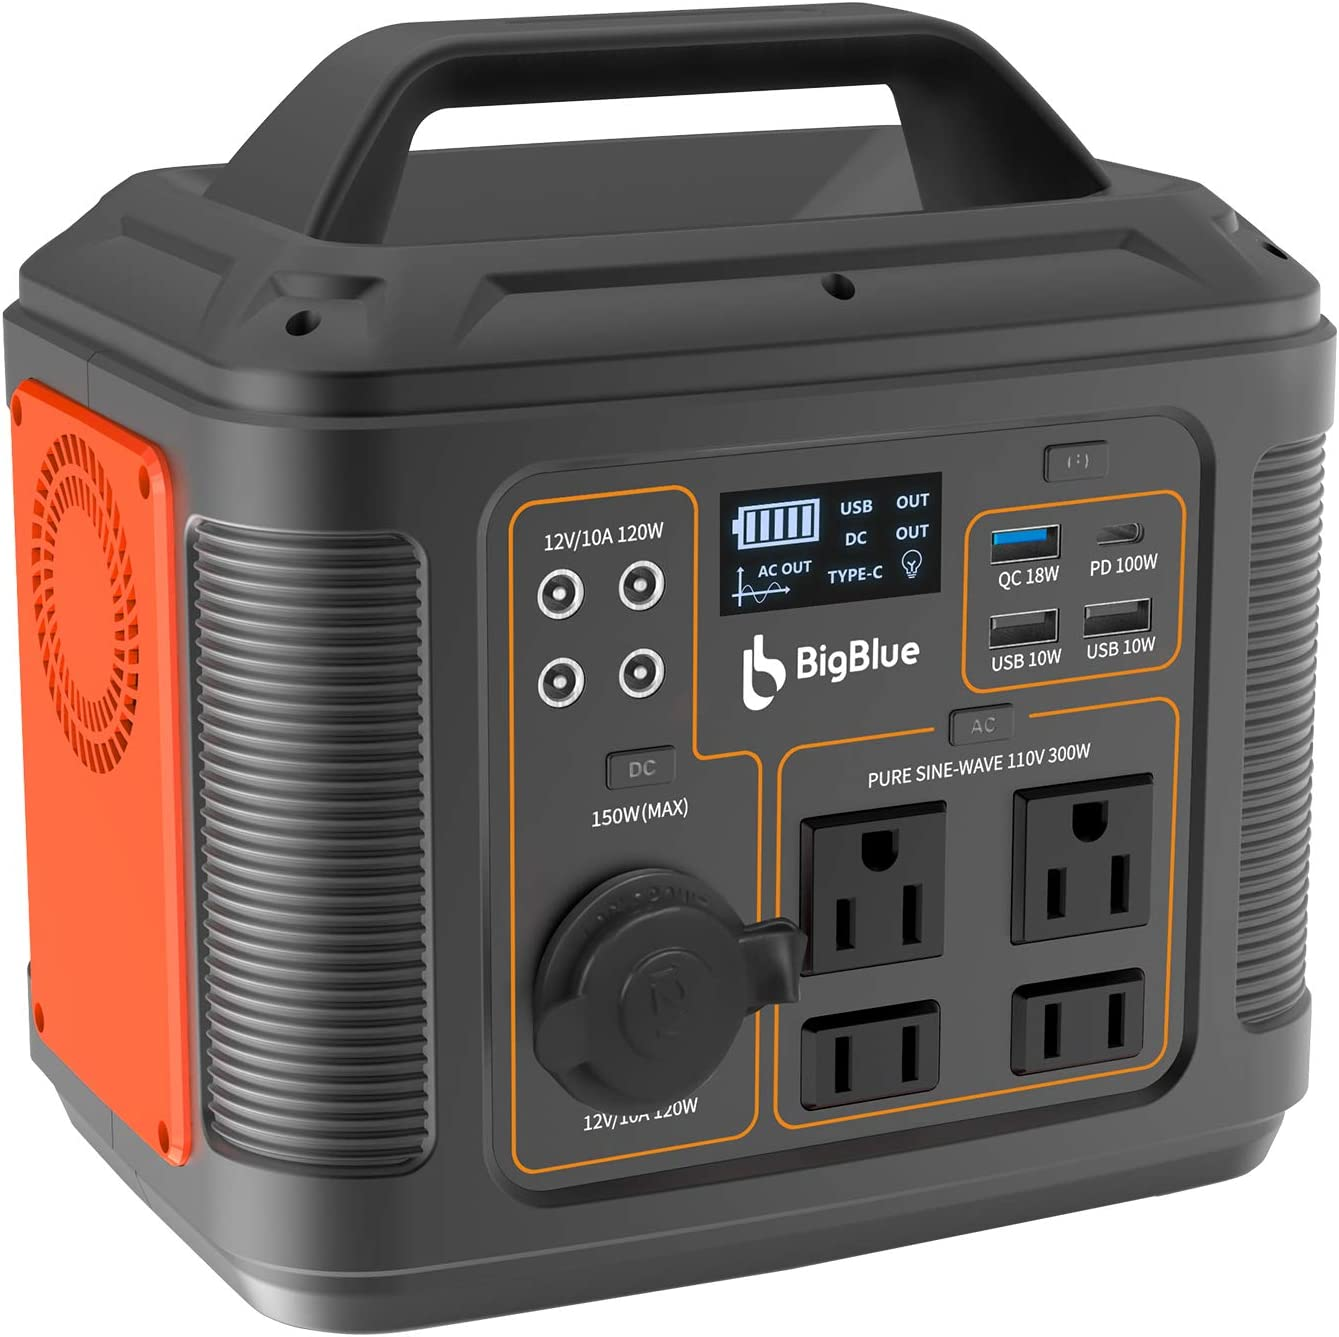 BigBlue [PD 100W Type-C] 296Wh Portable Solar Generator, 80000mAh Power Station with MPPT, 110V/300W Pure Sine Wave AC(Peak 600W)/4 DC/4 USB Ports, CPAP Backup Battery with 18W Flashlight for Camping